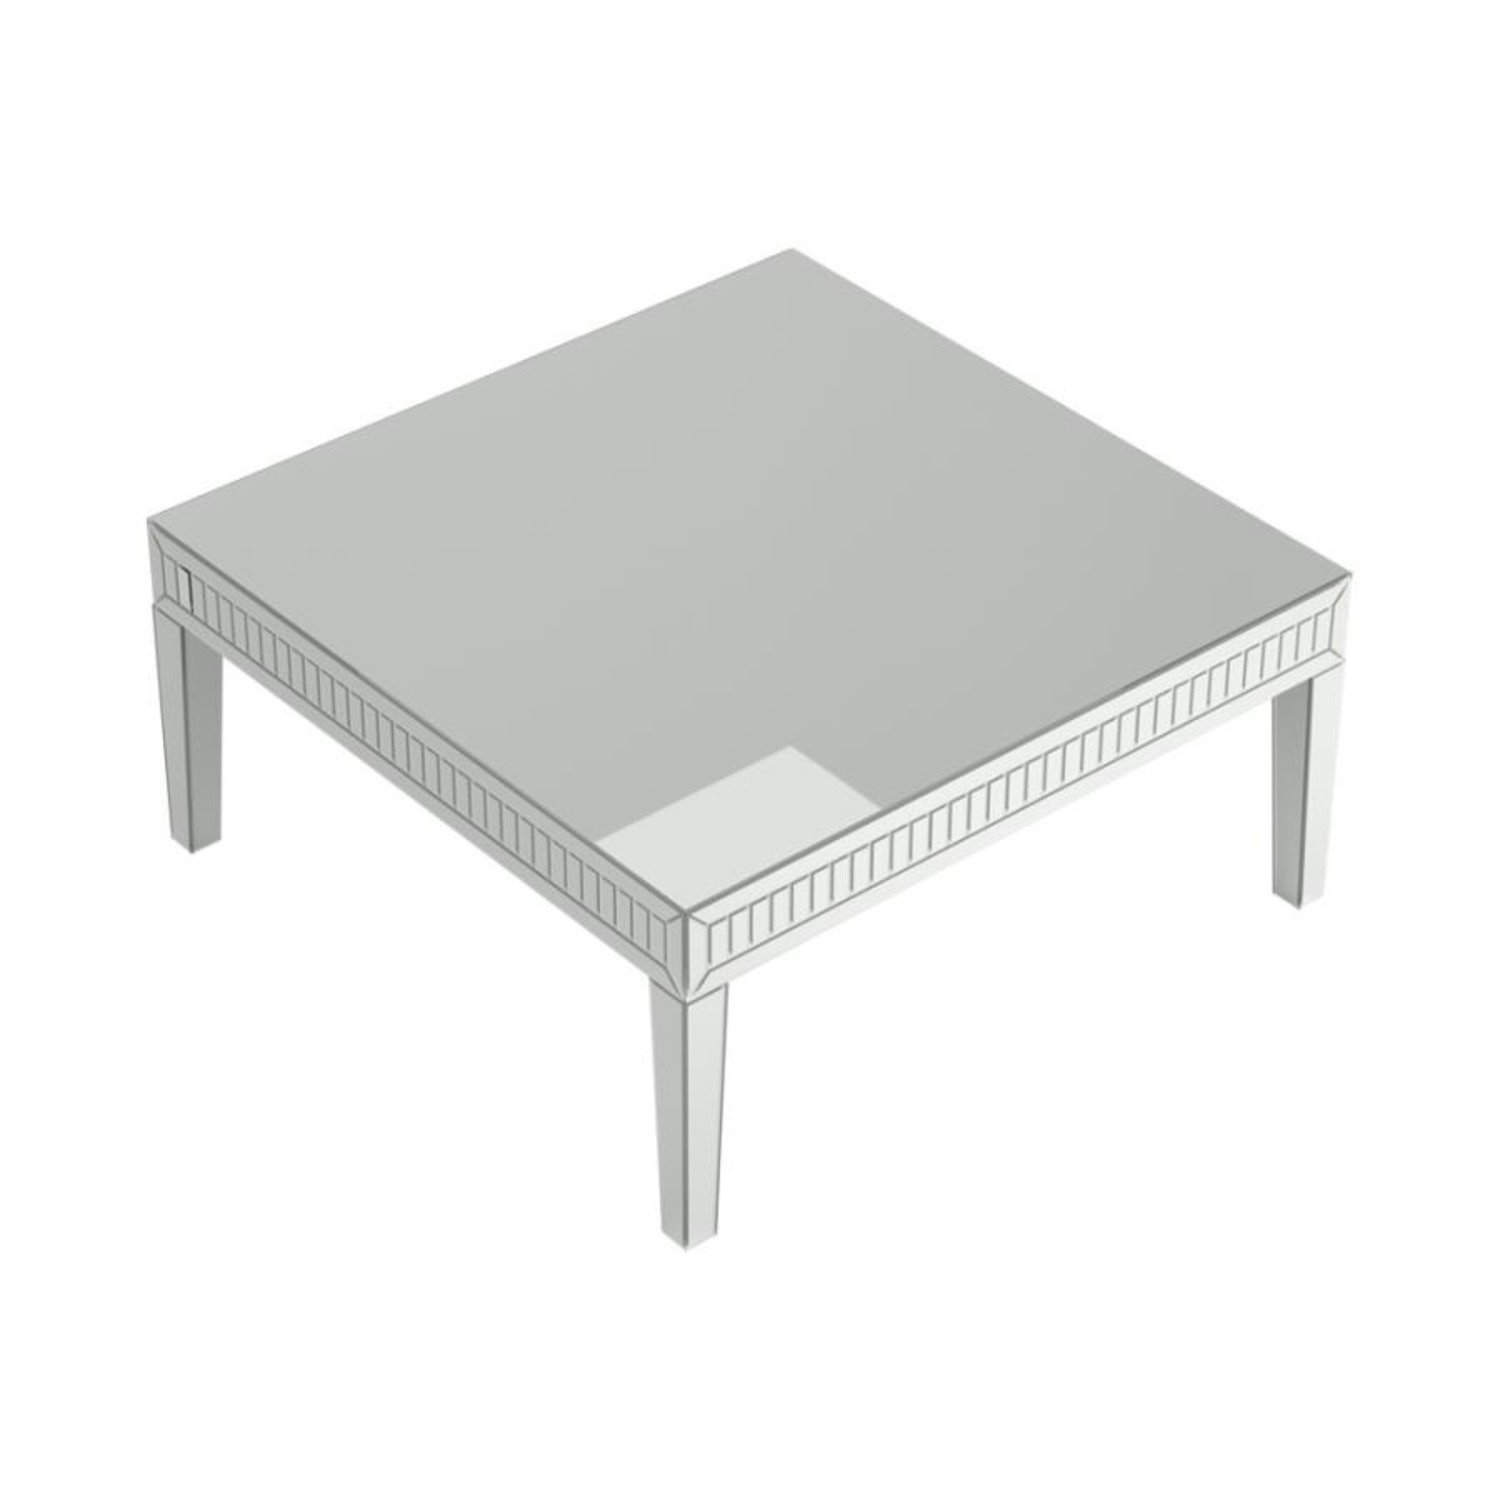 Coffee Table In Silver Finish W/ Mirror Tile Frame - image-2